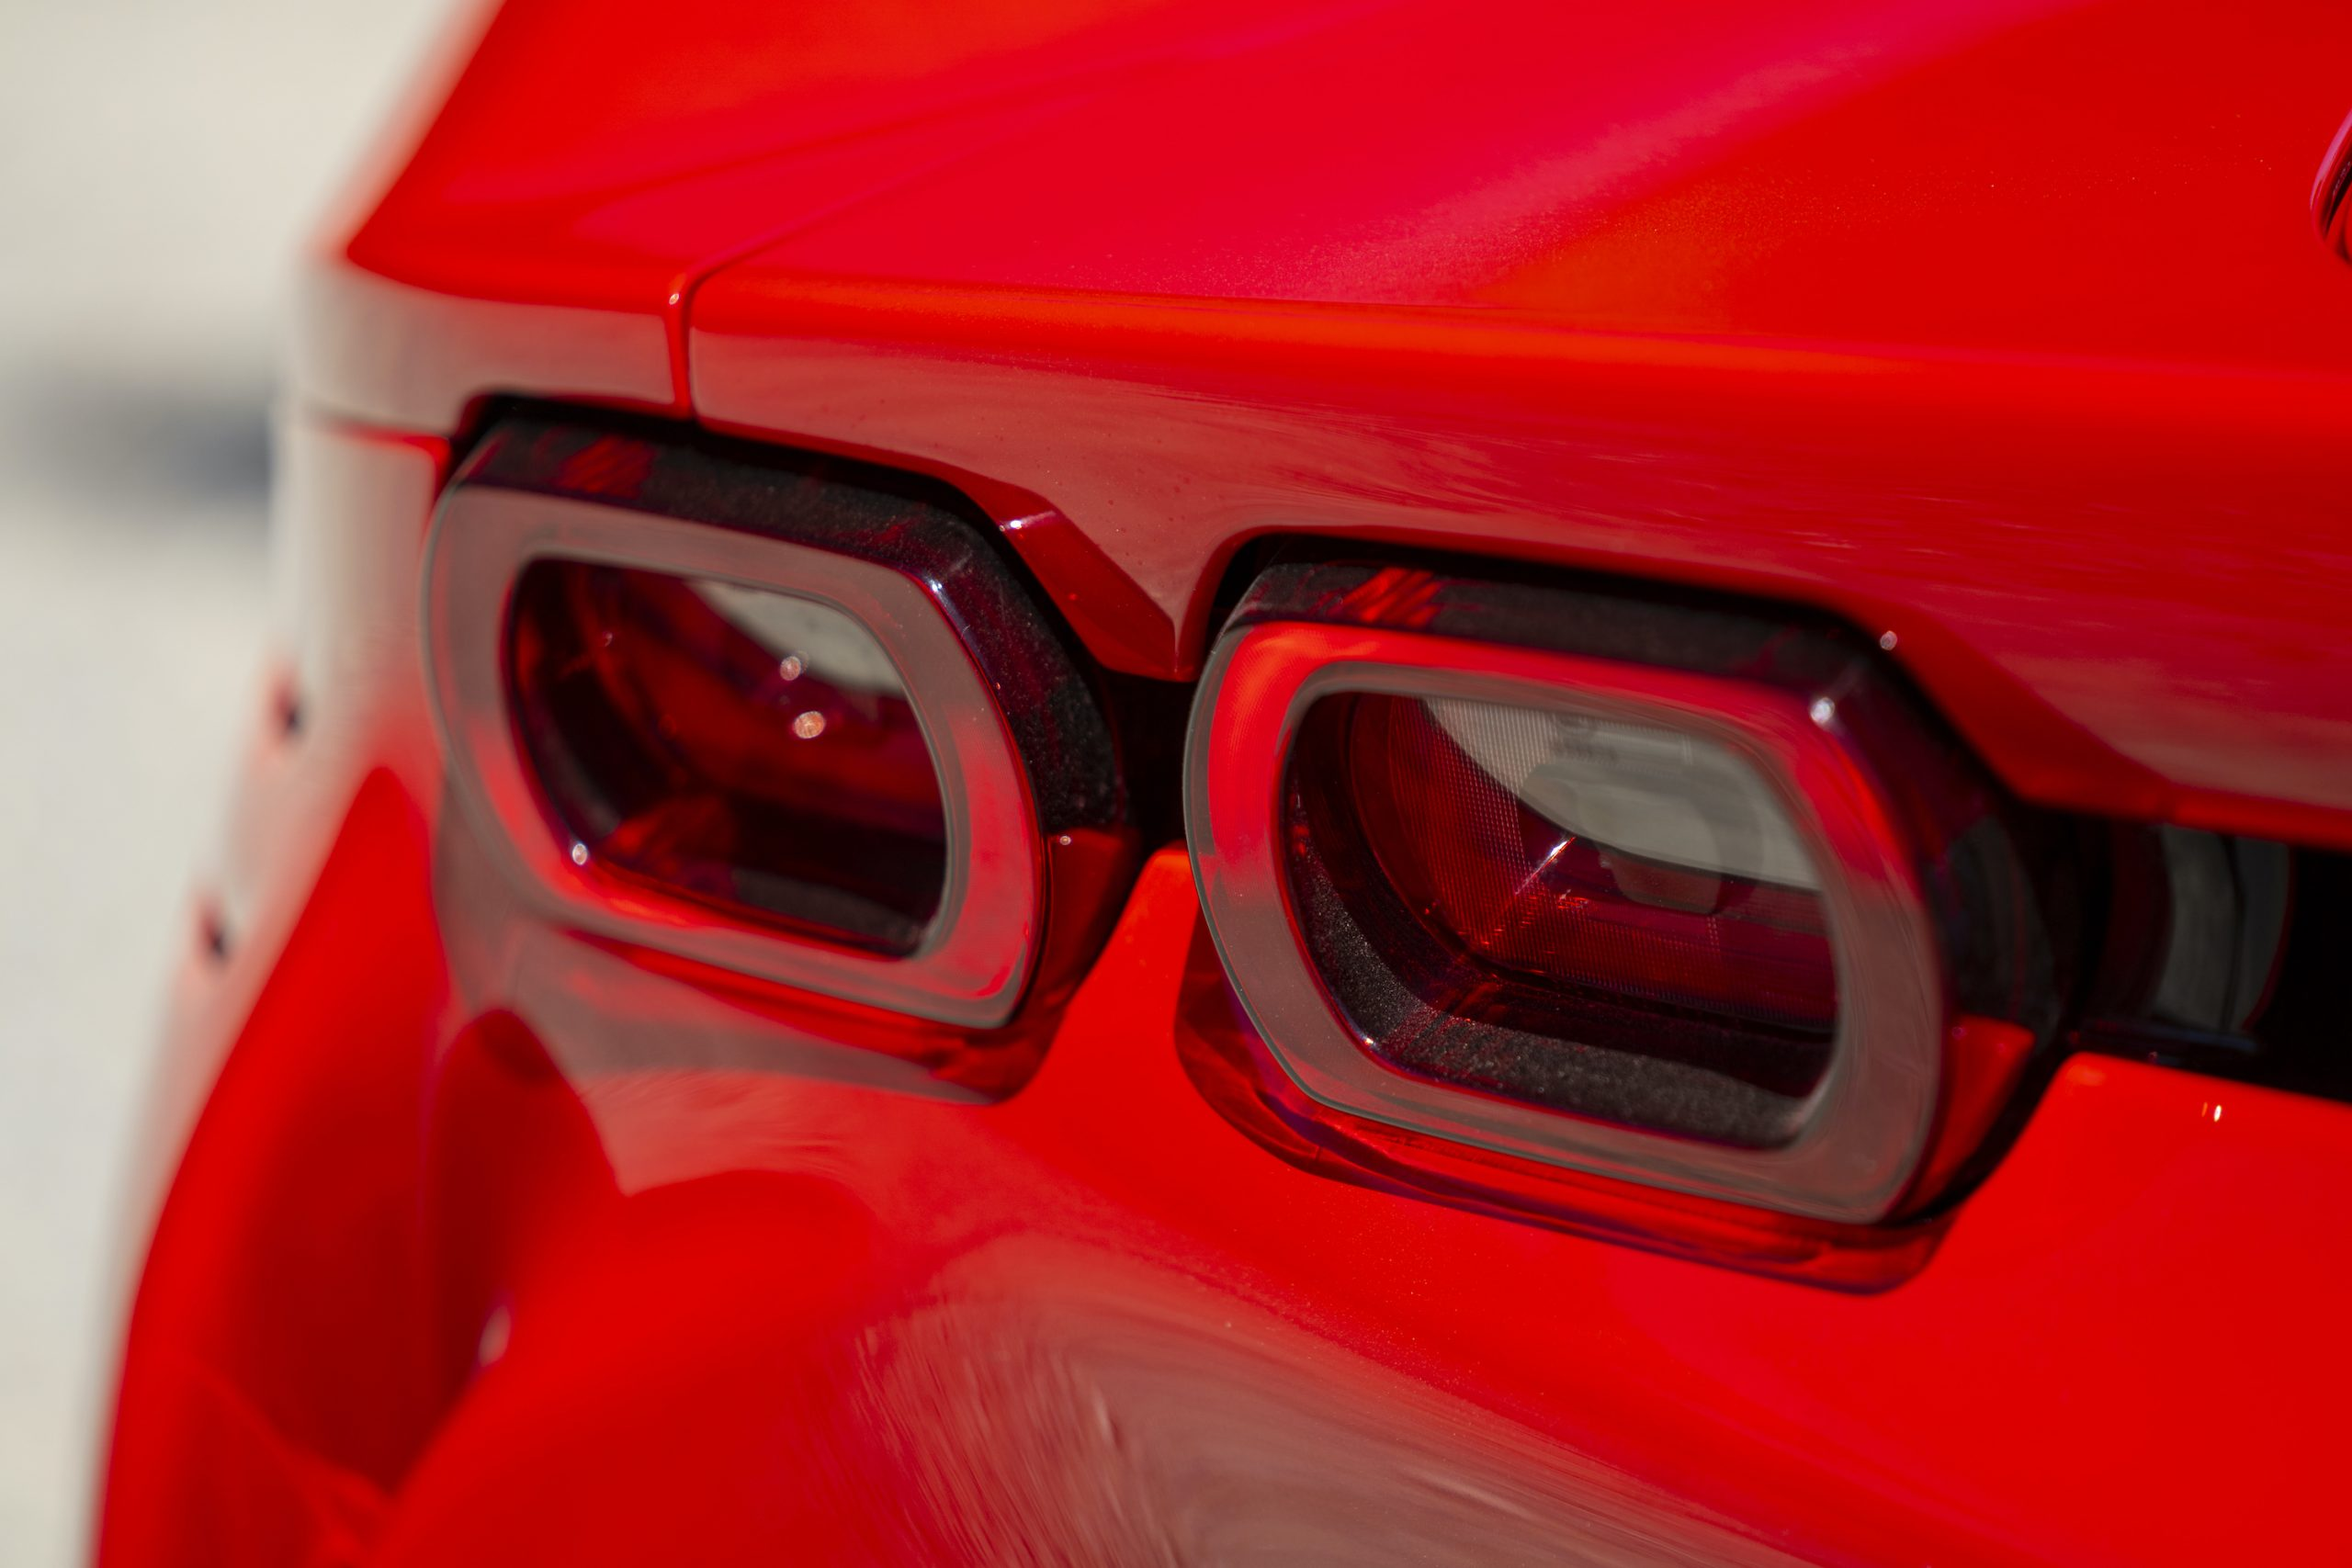 SF90 Stradale taillight